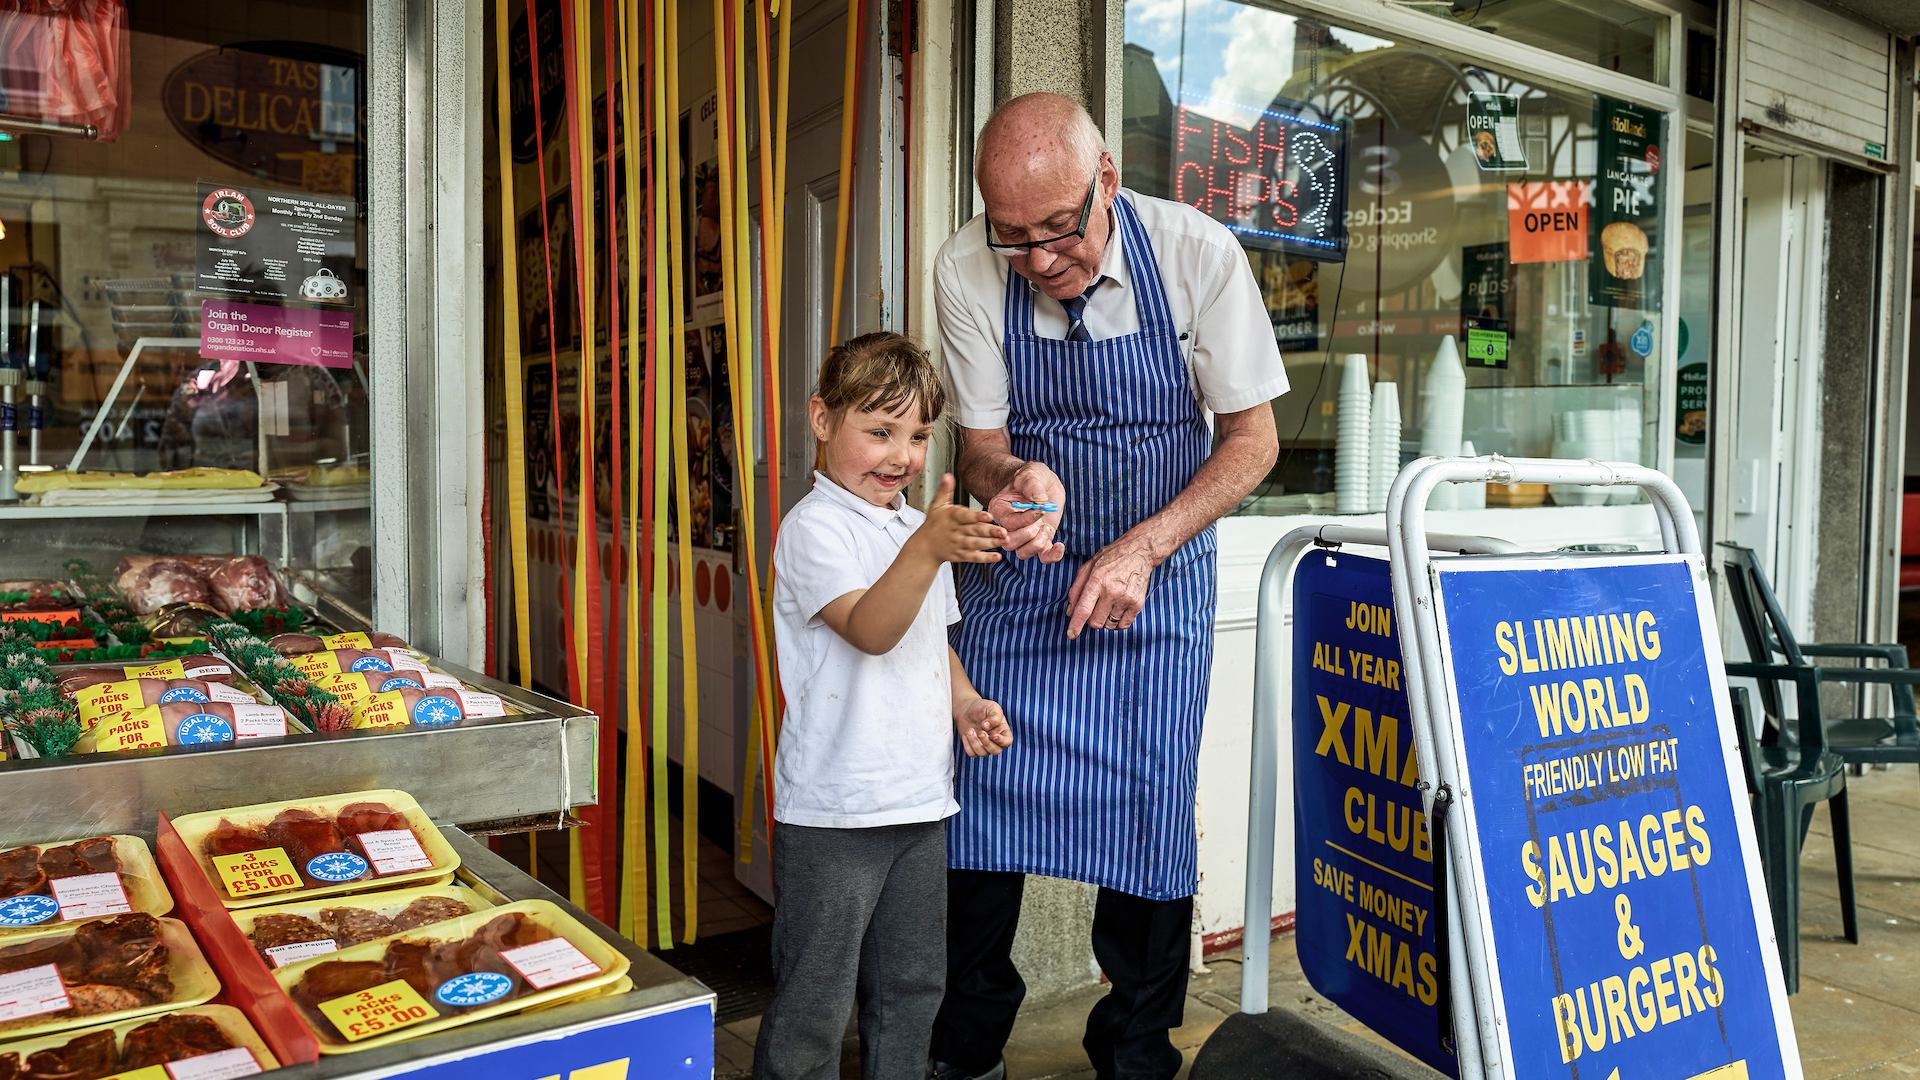 Butcher with young boy